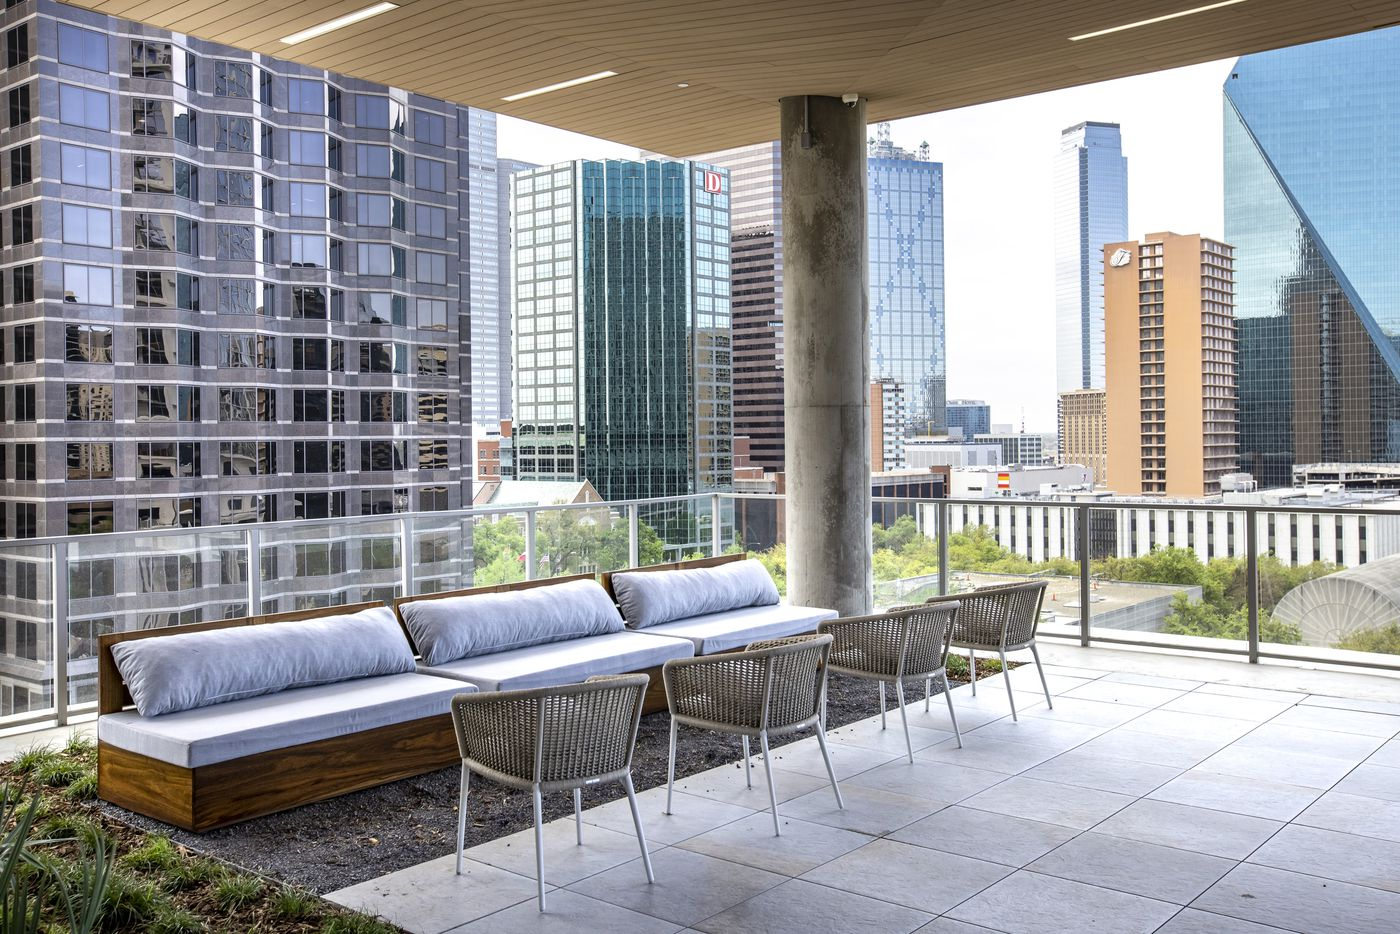 The 11th floor patio at the Atelier, a 41-story luxury residential building in the heart of the Dallas Arts District. (Lynda M. González/The Dallas Morning News)